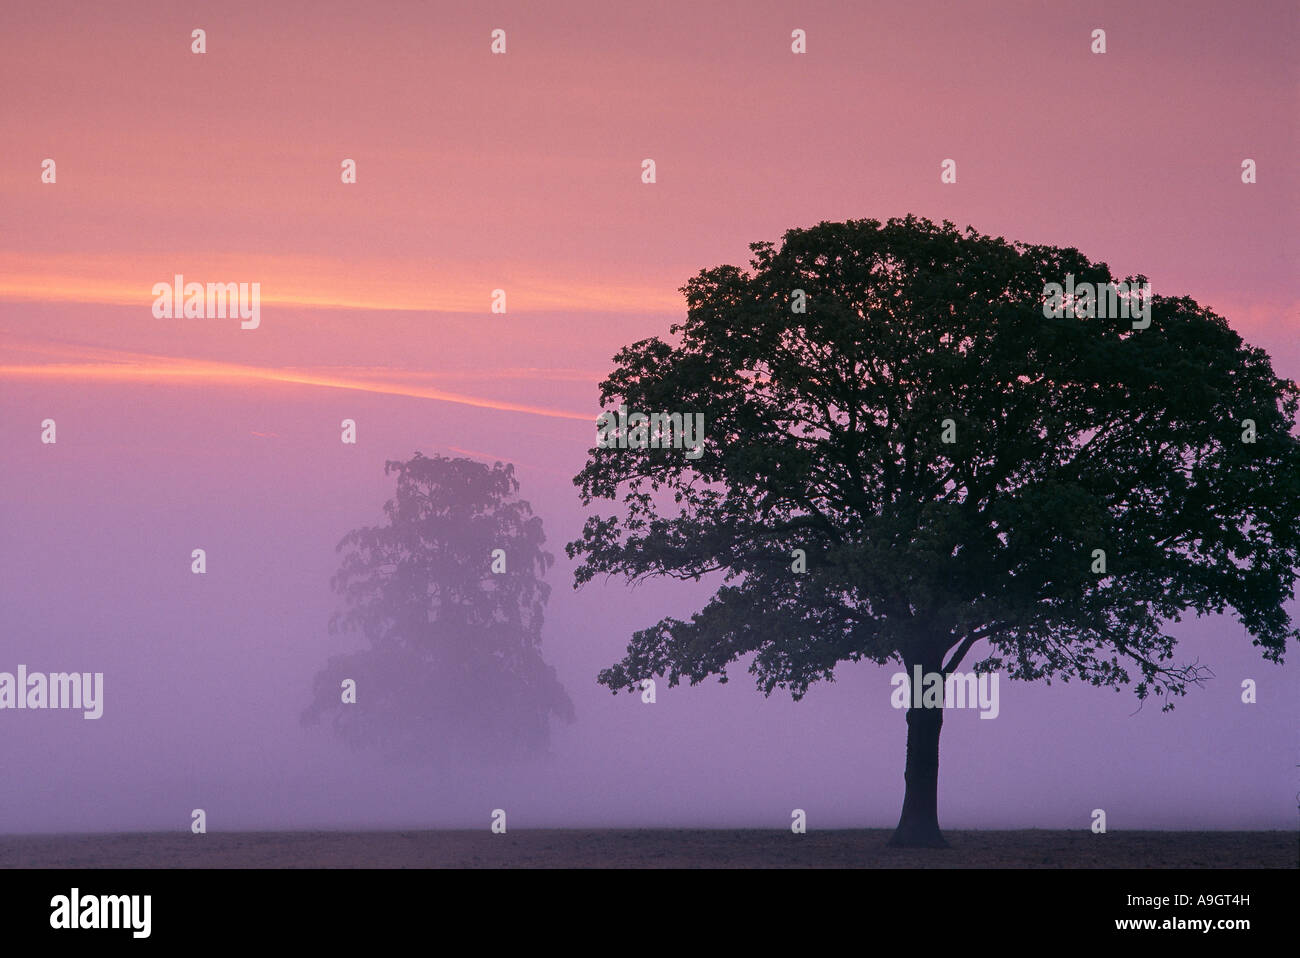 a tree silhouetted in the misty dawn at Milborne Port nr Sherborne Dorset England UK Stock Photo